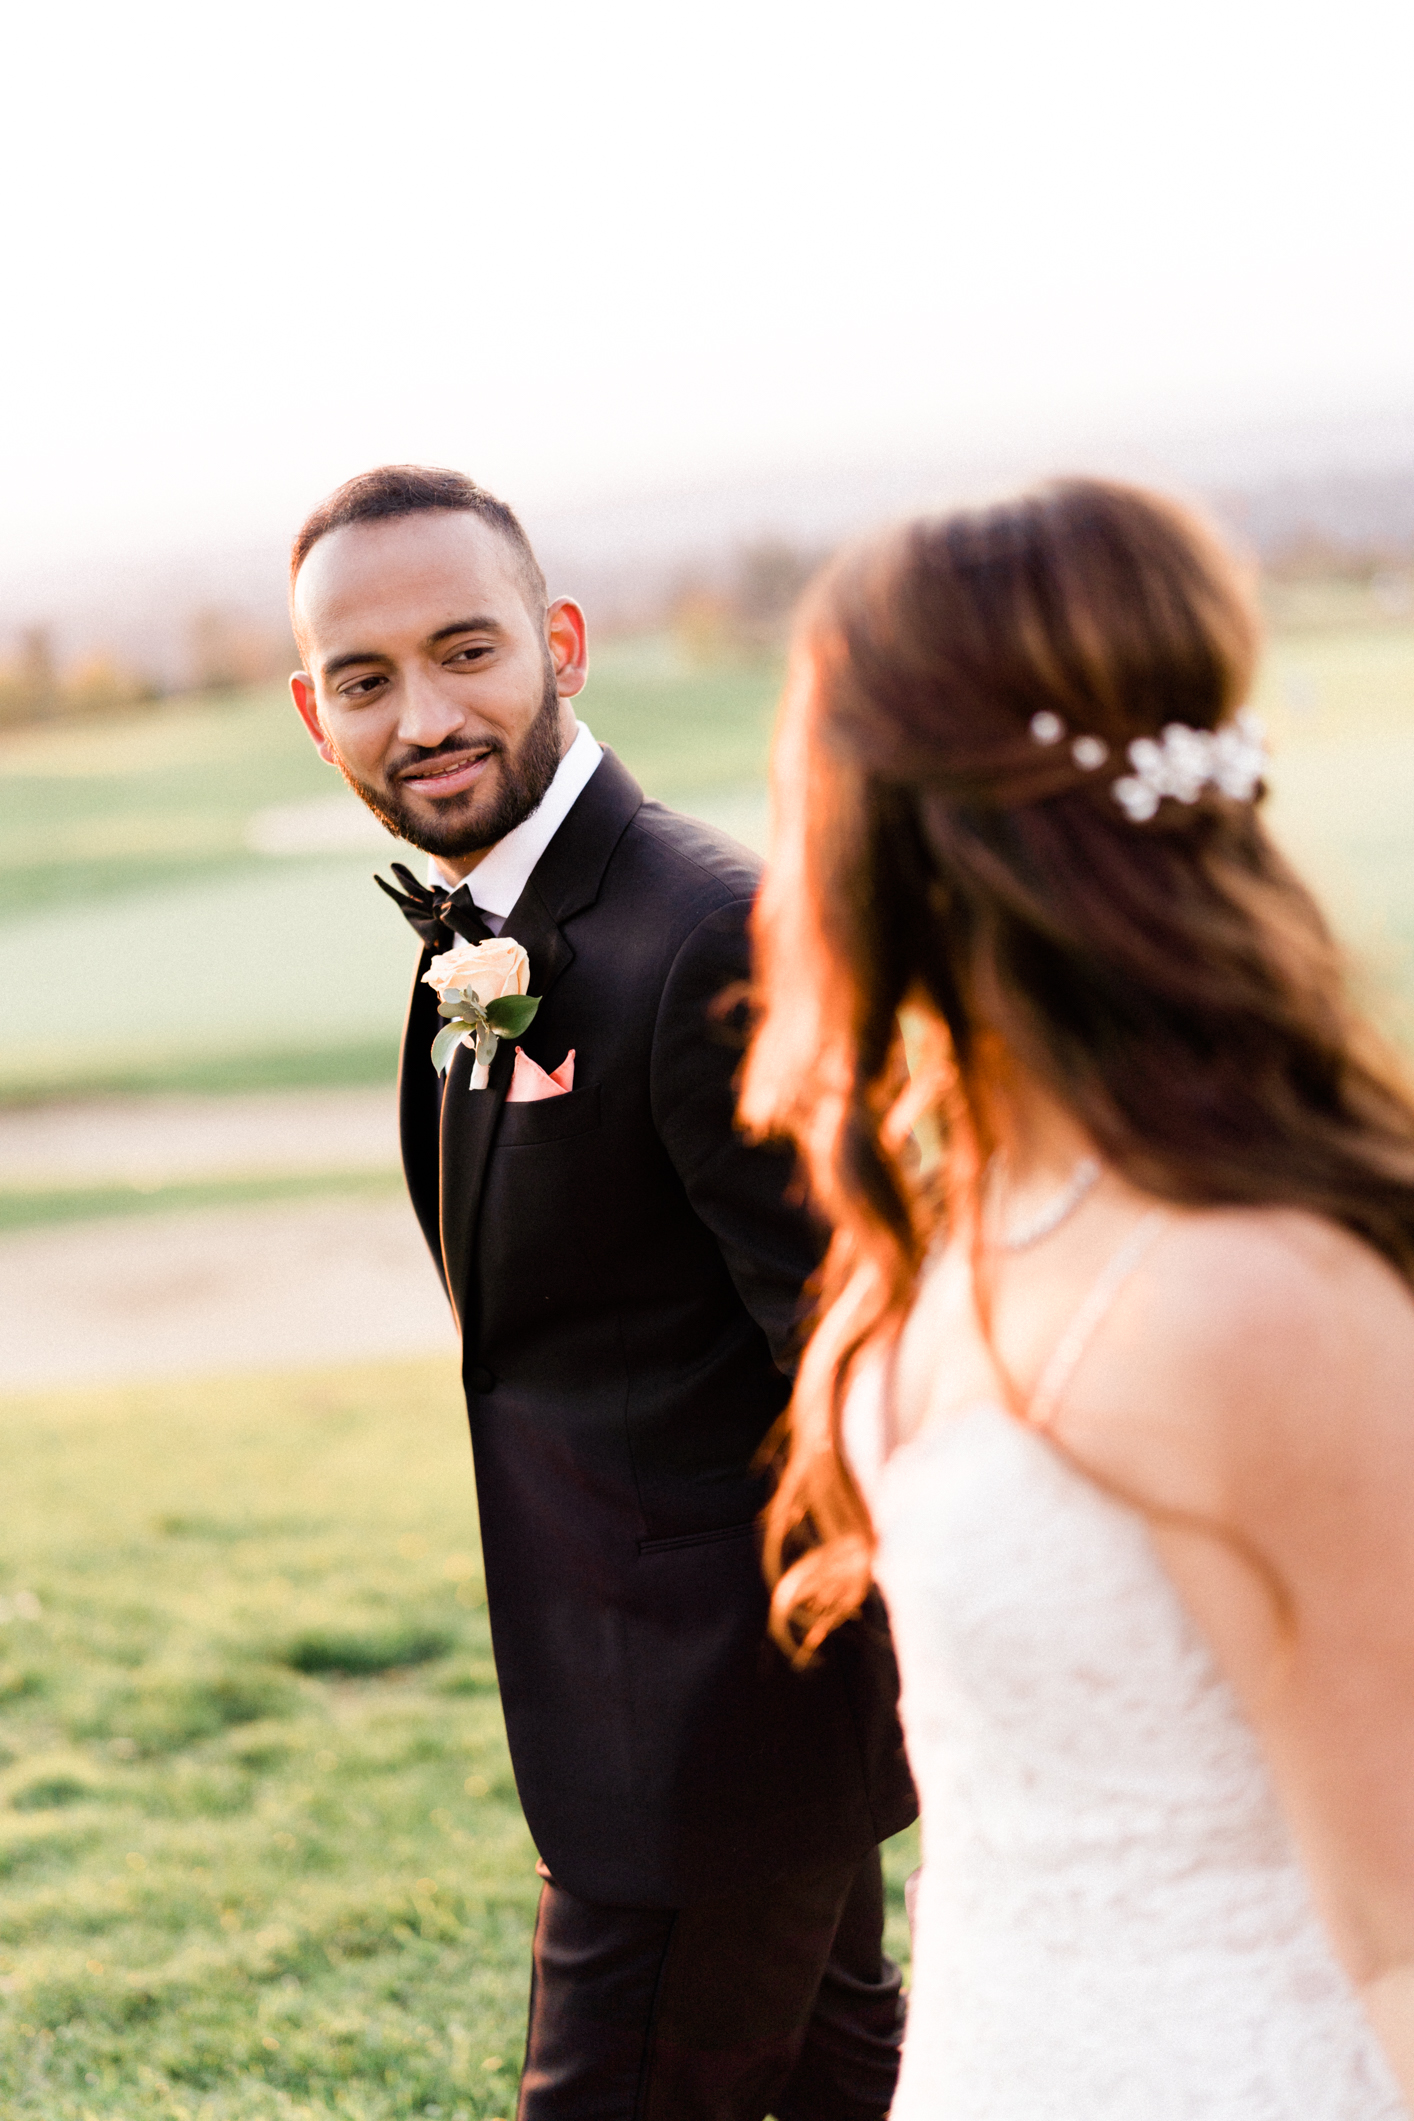 best wedding photography in seattle shows tears and happiness at pnw wedding